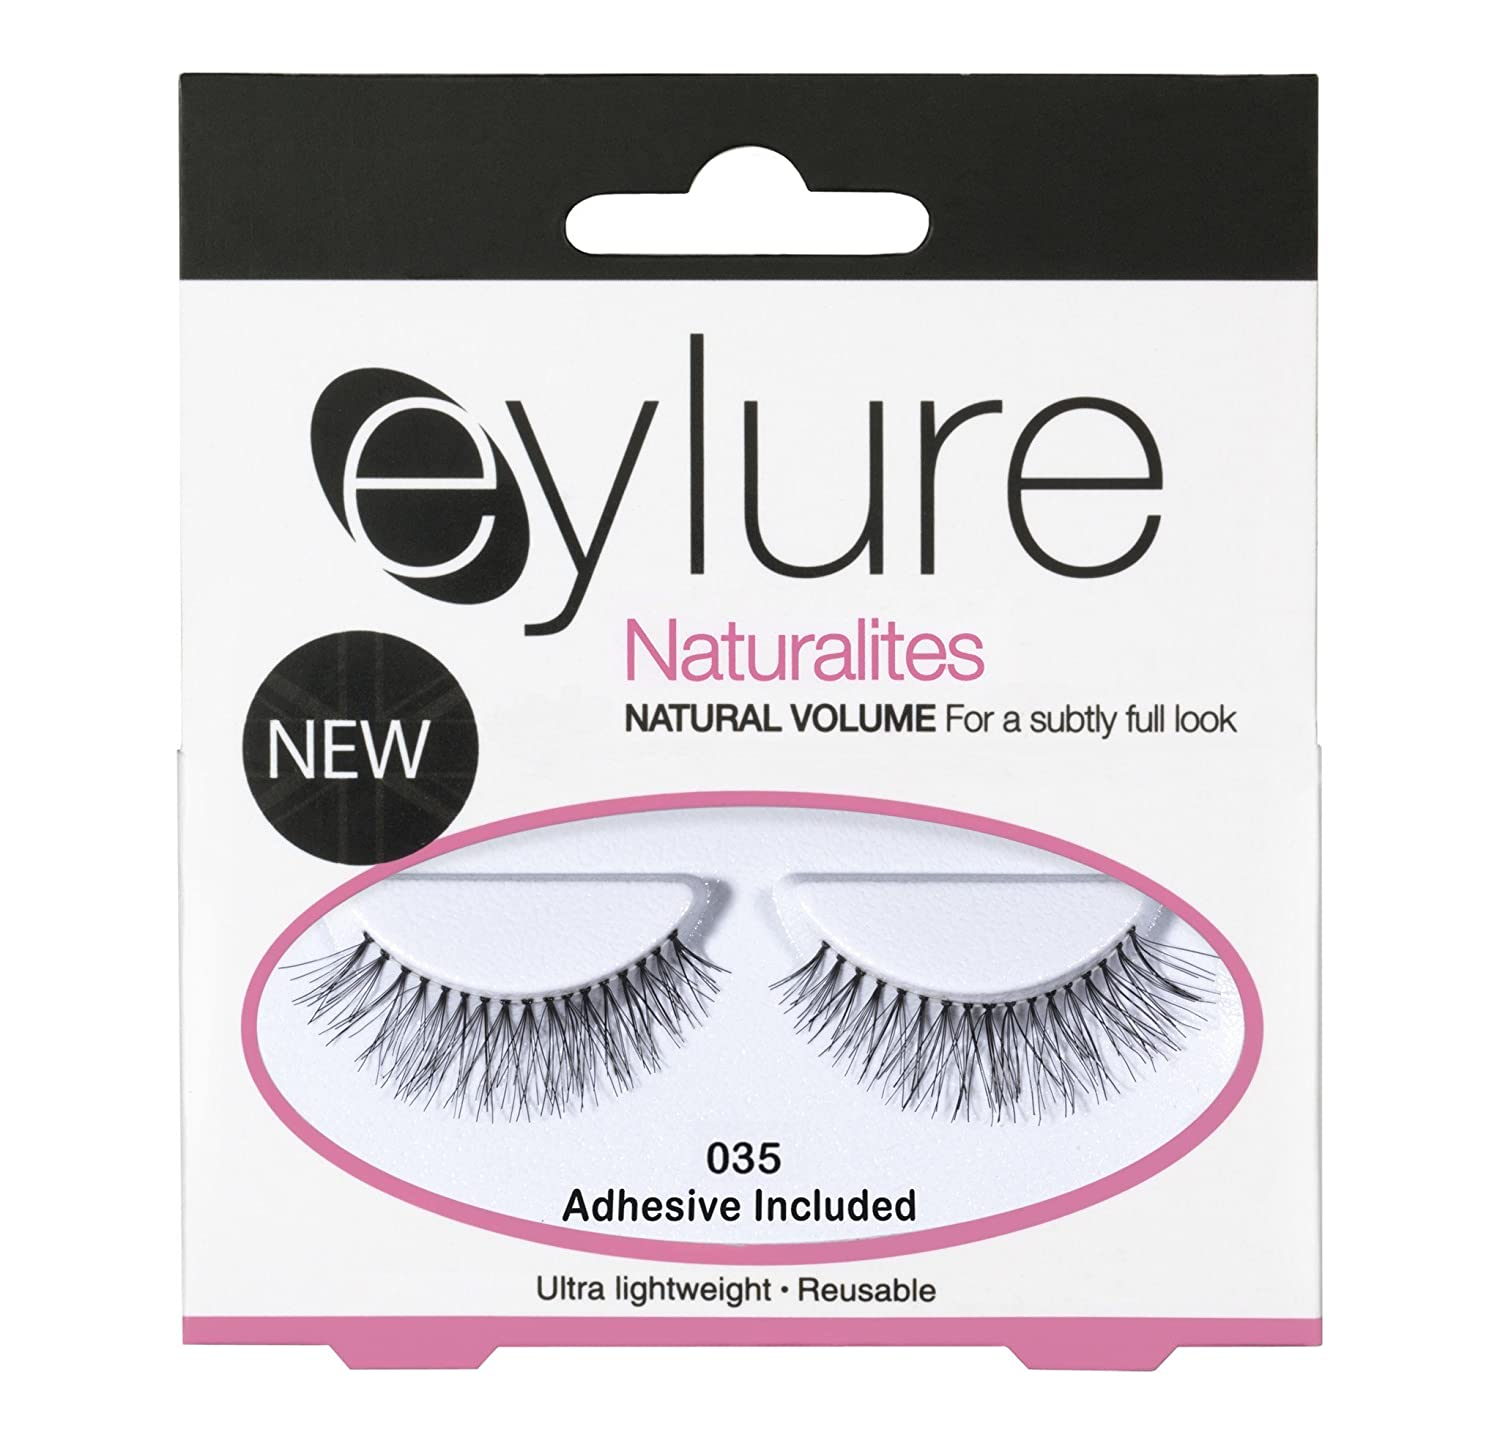 d86833dcab3 Amazon.com: EYLURE NATURALITES NATURAL VOLUME FALSE EYELASHES - 035: Beauty